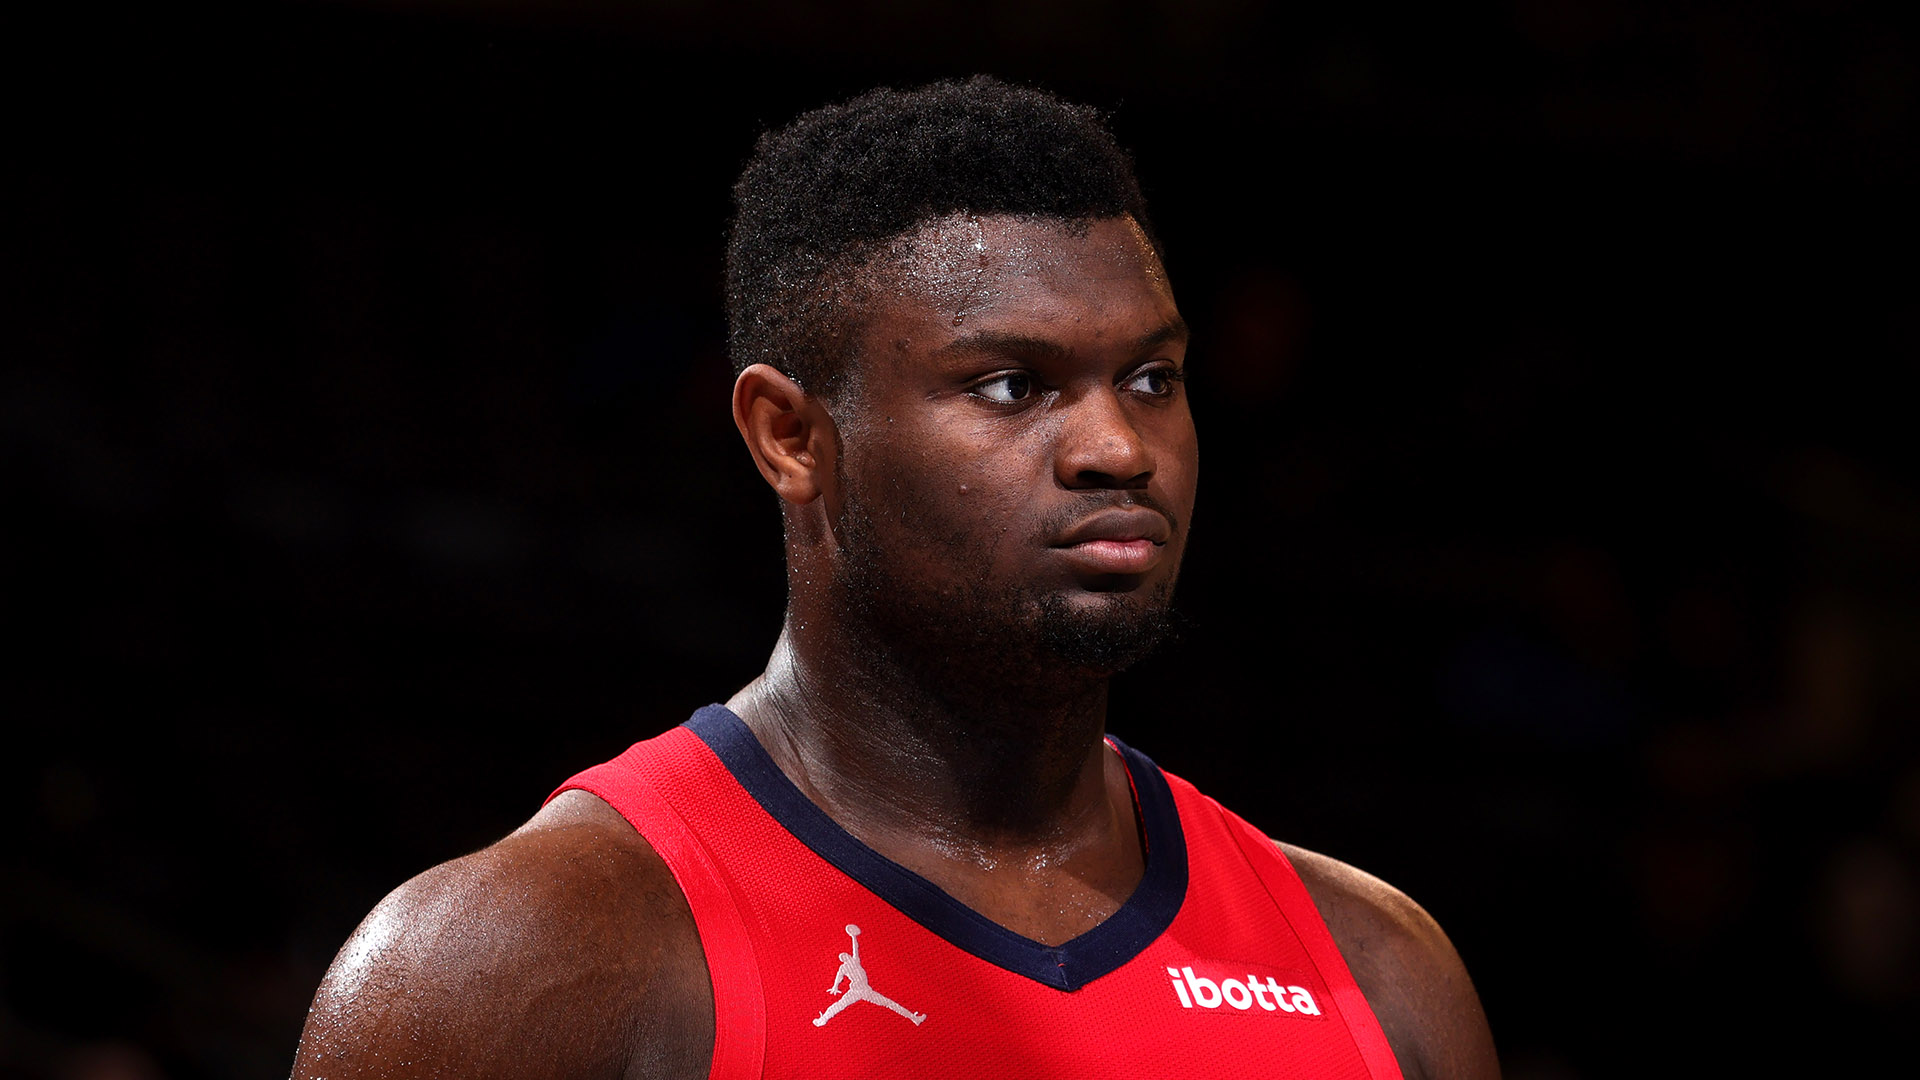 Changes needed after Zion Williamson's injury?